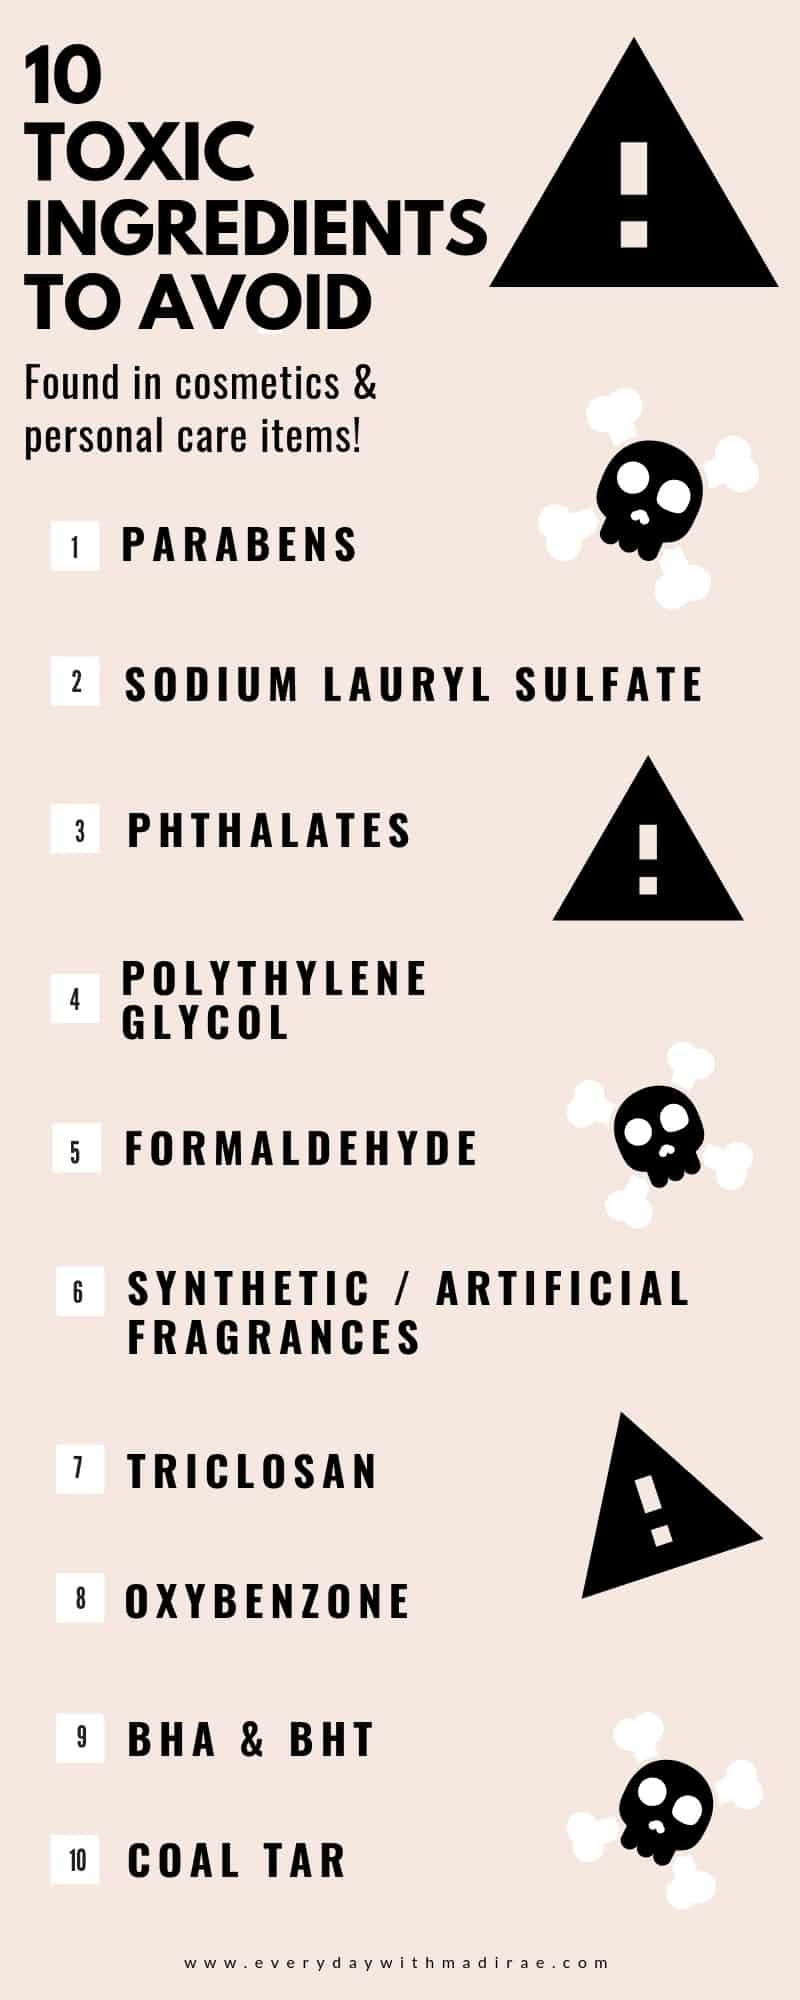 Sharing the importance of choosing clean beauty & personal care products due to the lack of U.S. regulations, plus, a list of 10 toxic ingredients to avoid!